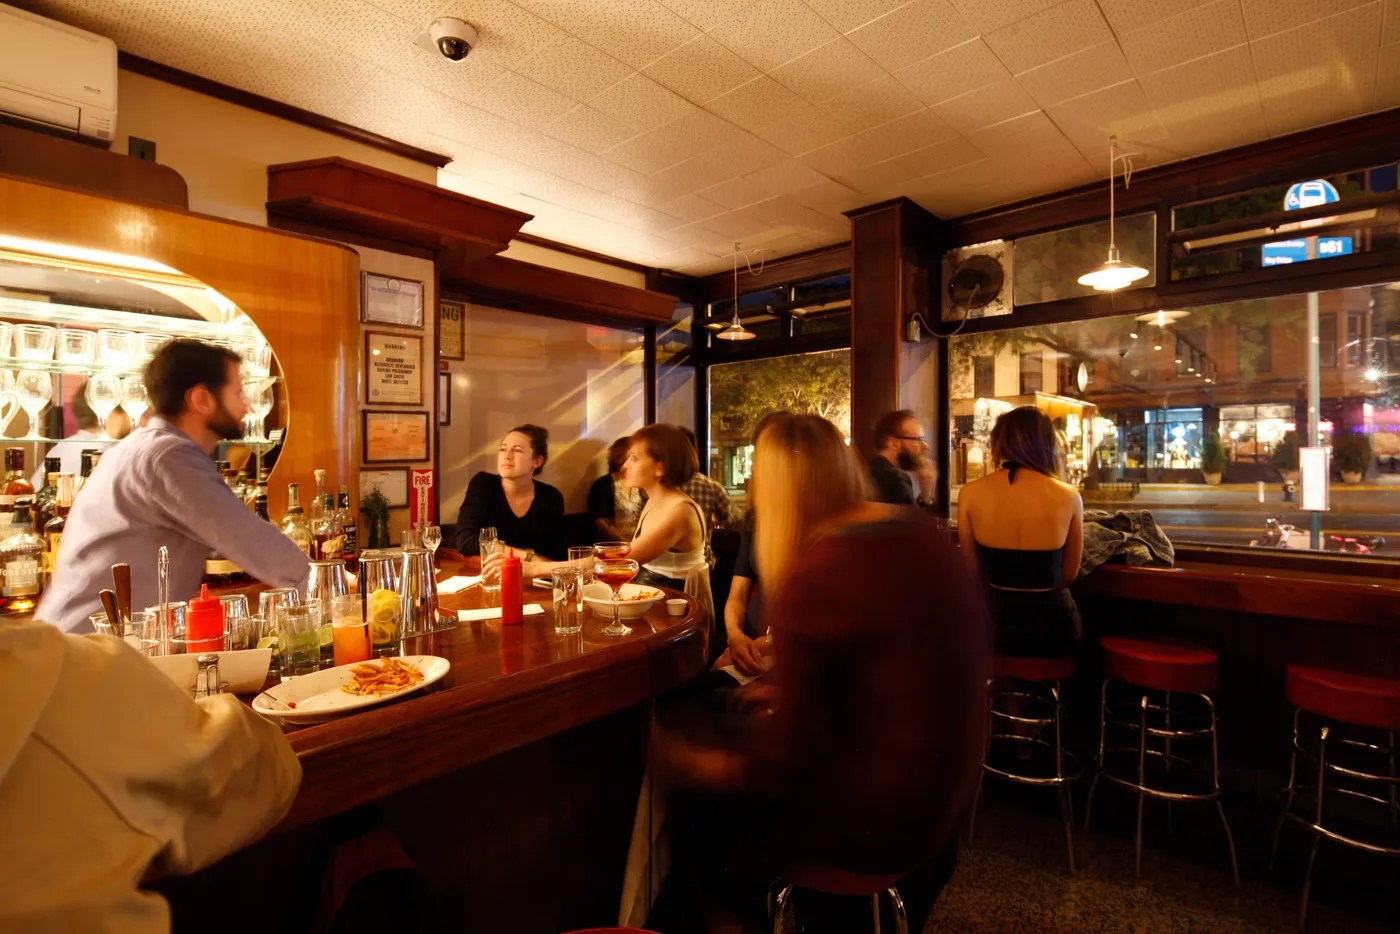 La Cucina Restaurant Brooklyn Ny The Absolute Best Restaurants In Cobble Hill